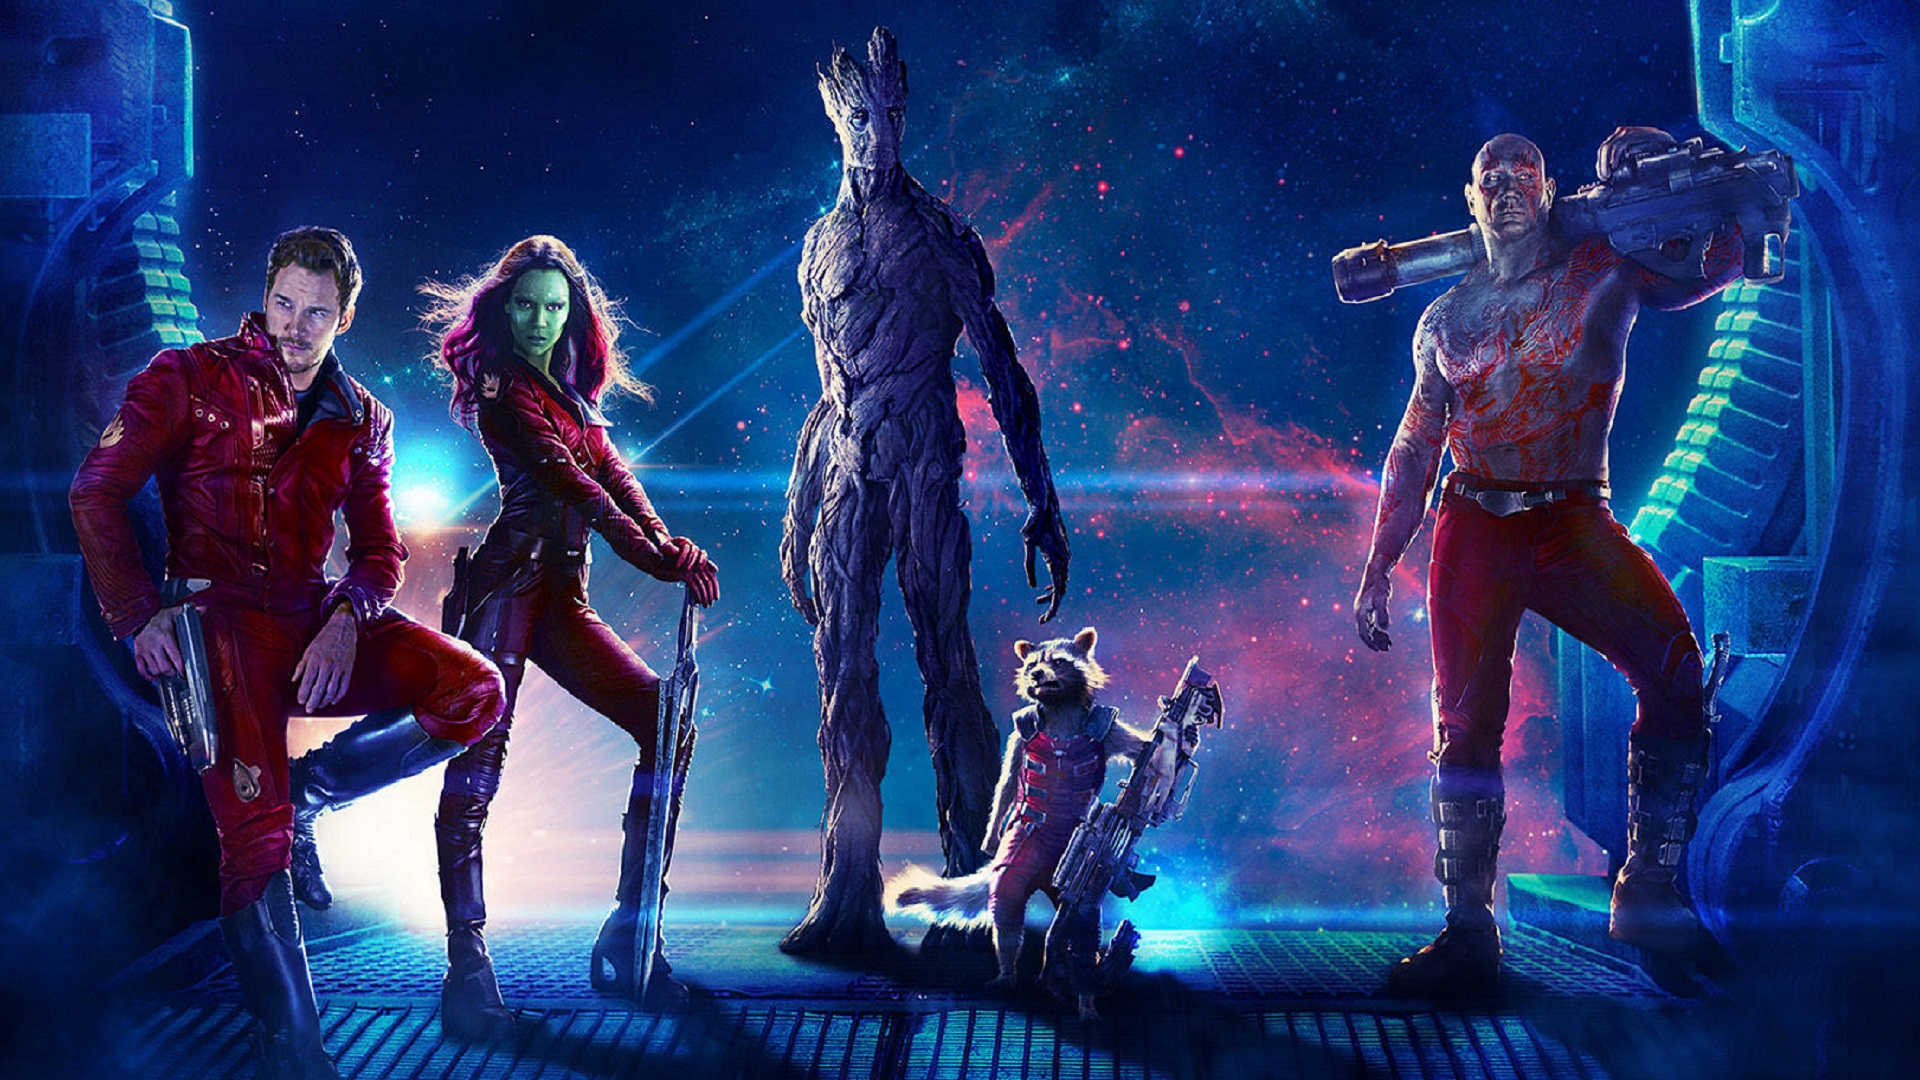 Free Download Guardians Of The Galaxy 2 Movie Hd Wallpaper